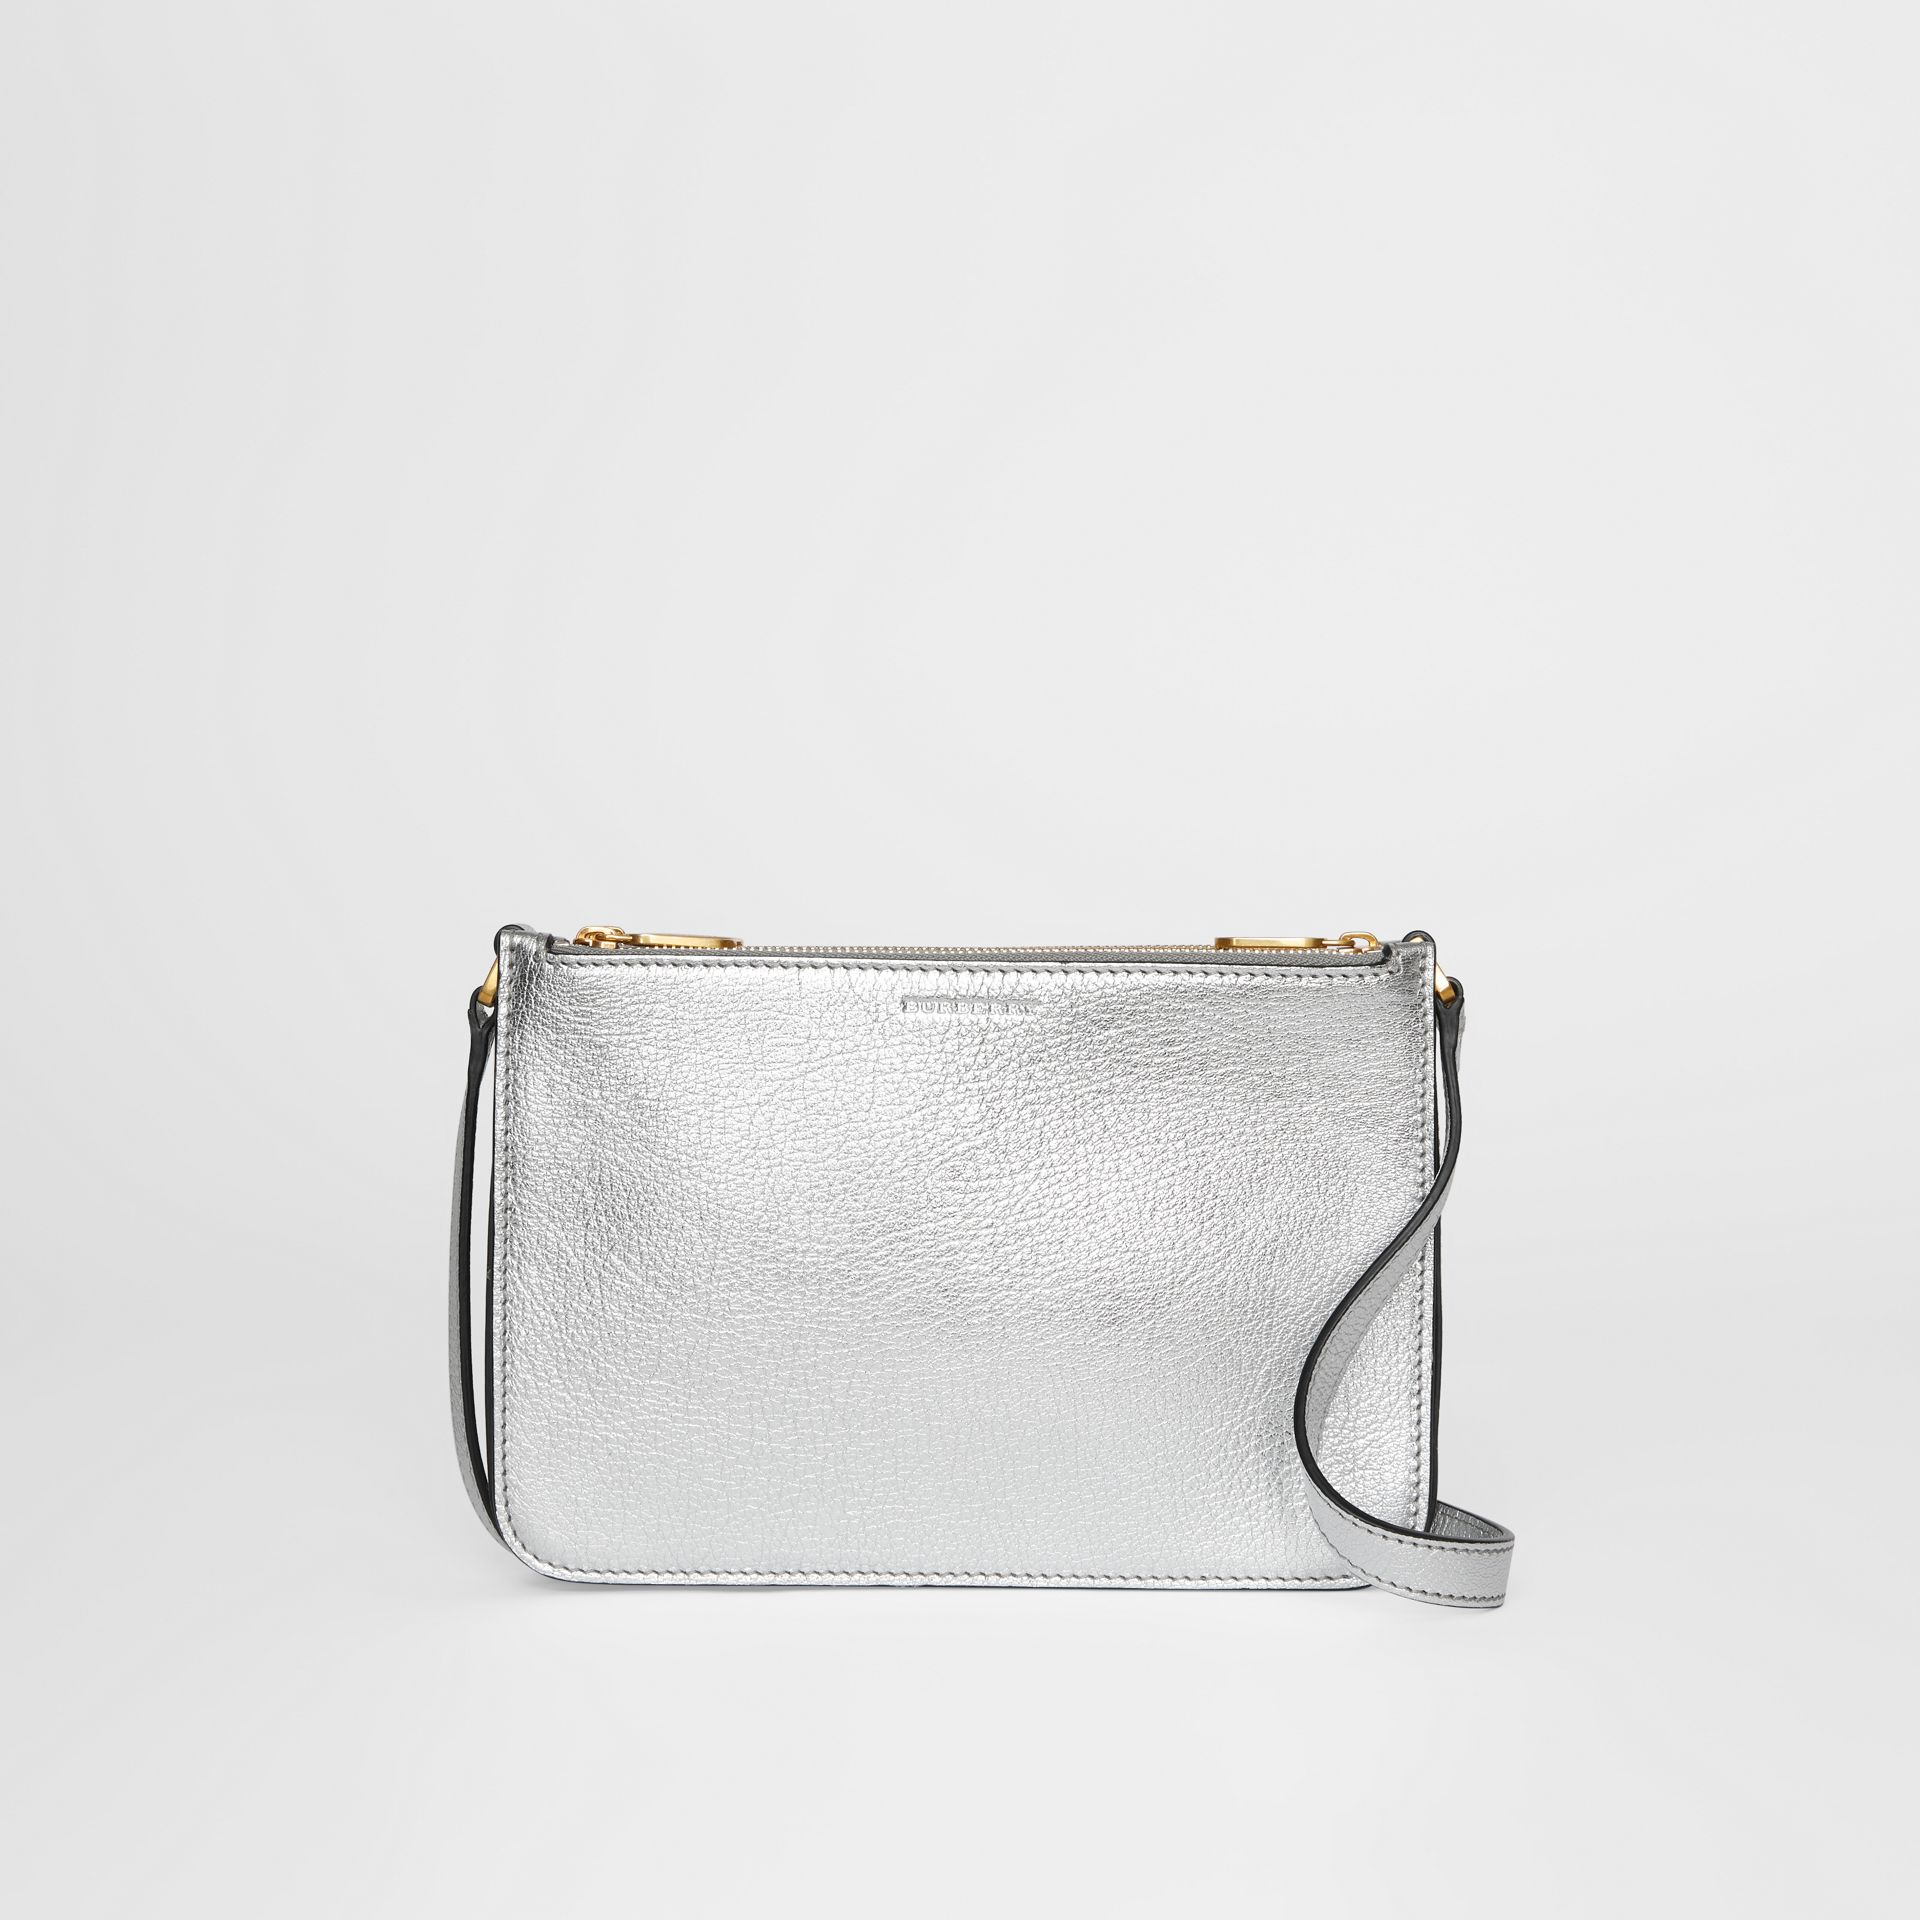 Triple Zip Metallic Leather Crossbody Bag in Silver - Women | Burberry Canada - gallery image 0